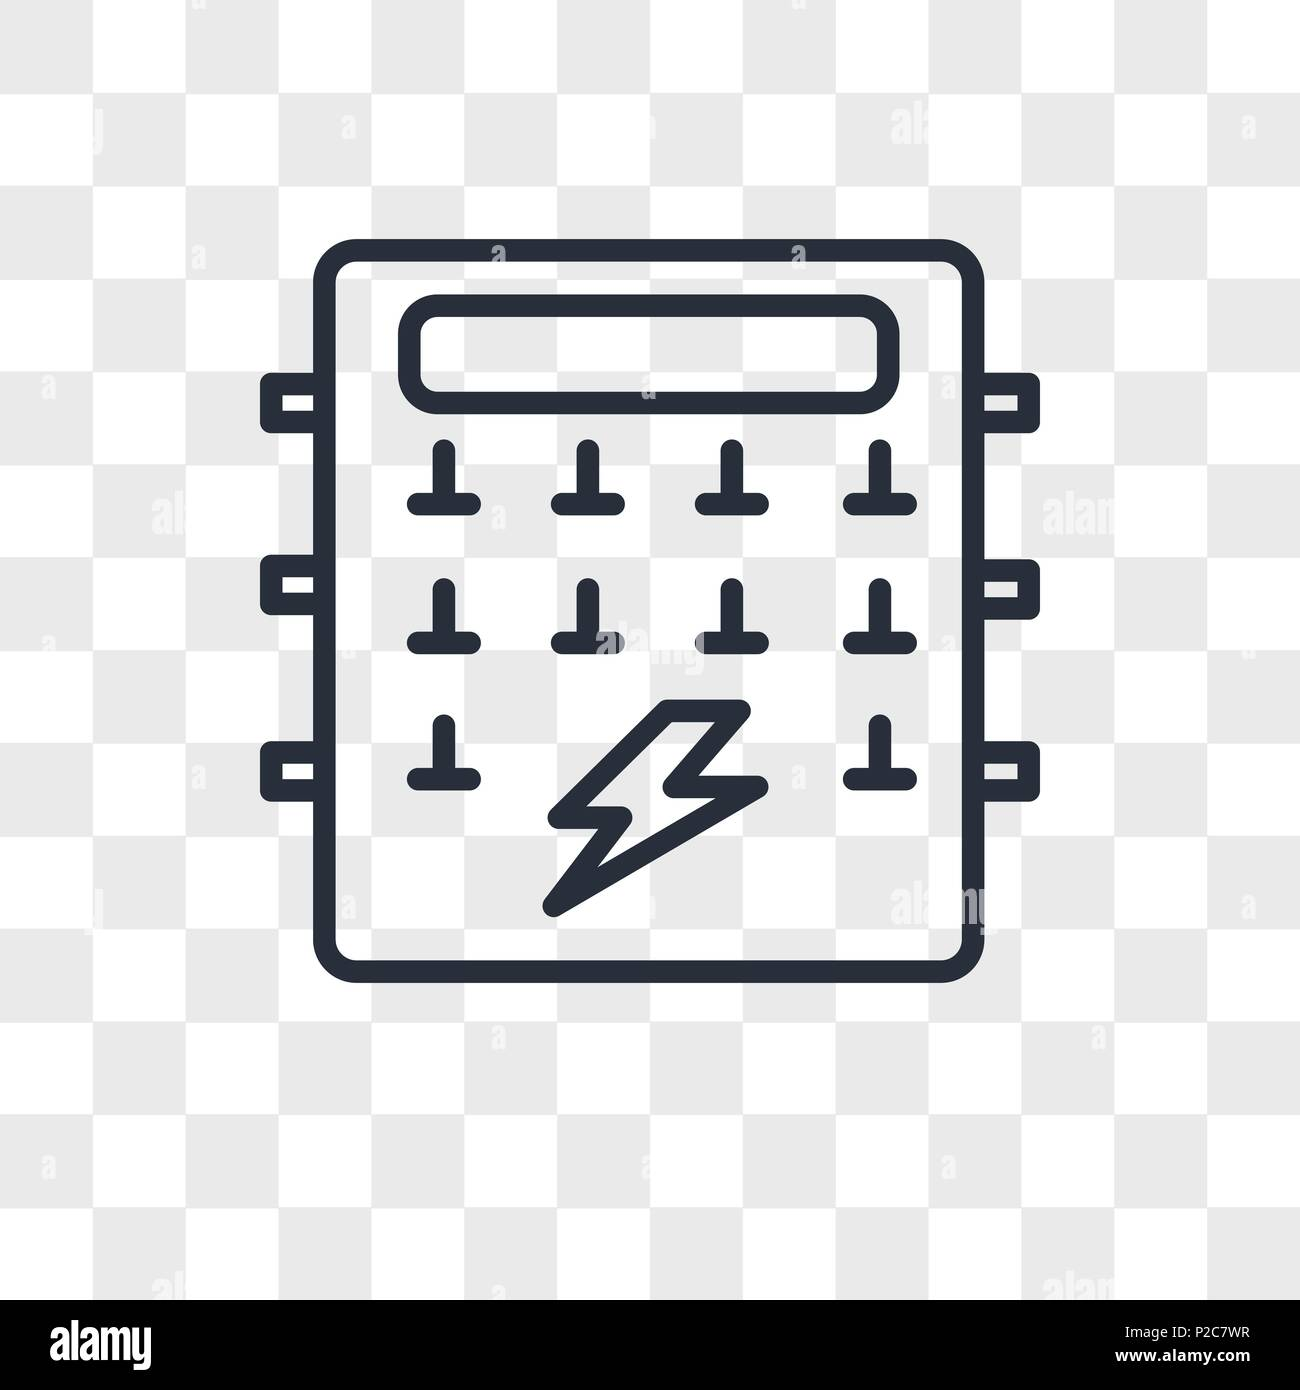 Fuse box vector icon isolated on transparent background, Fuse box logo  concept